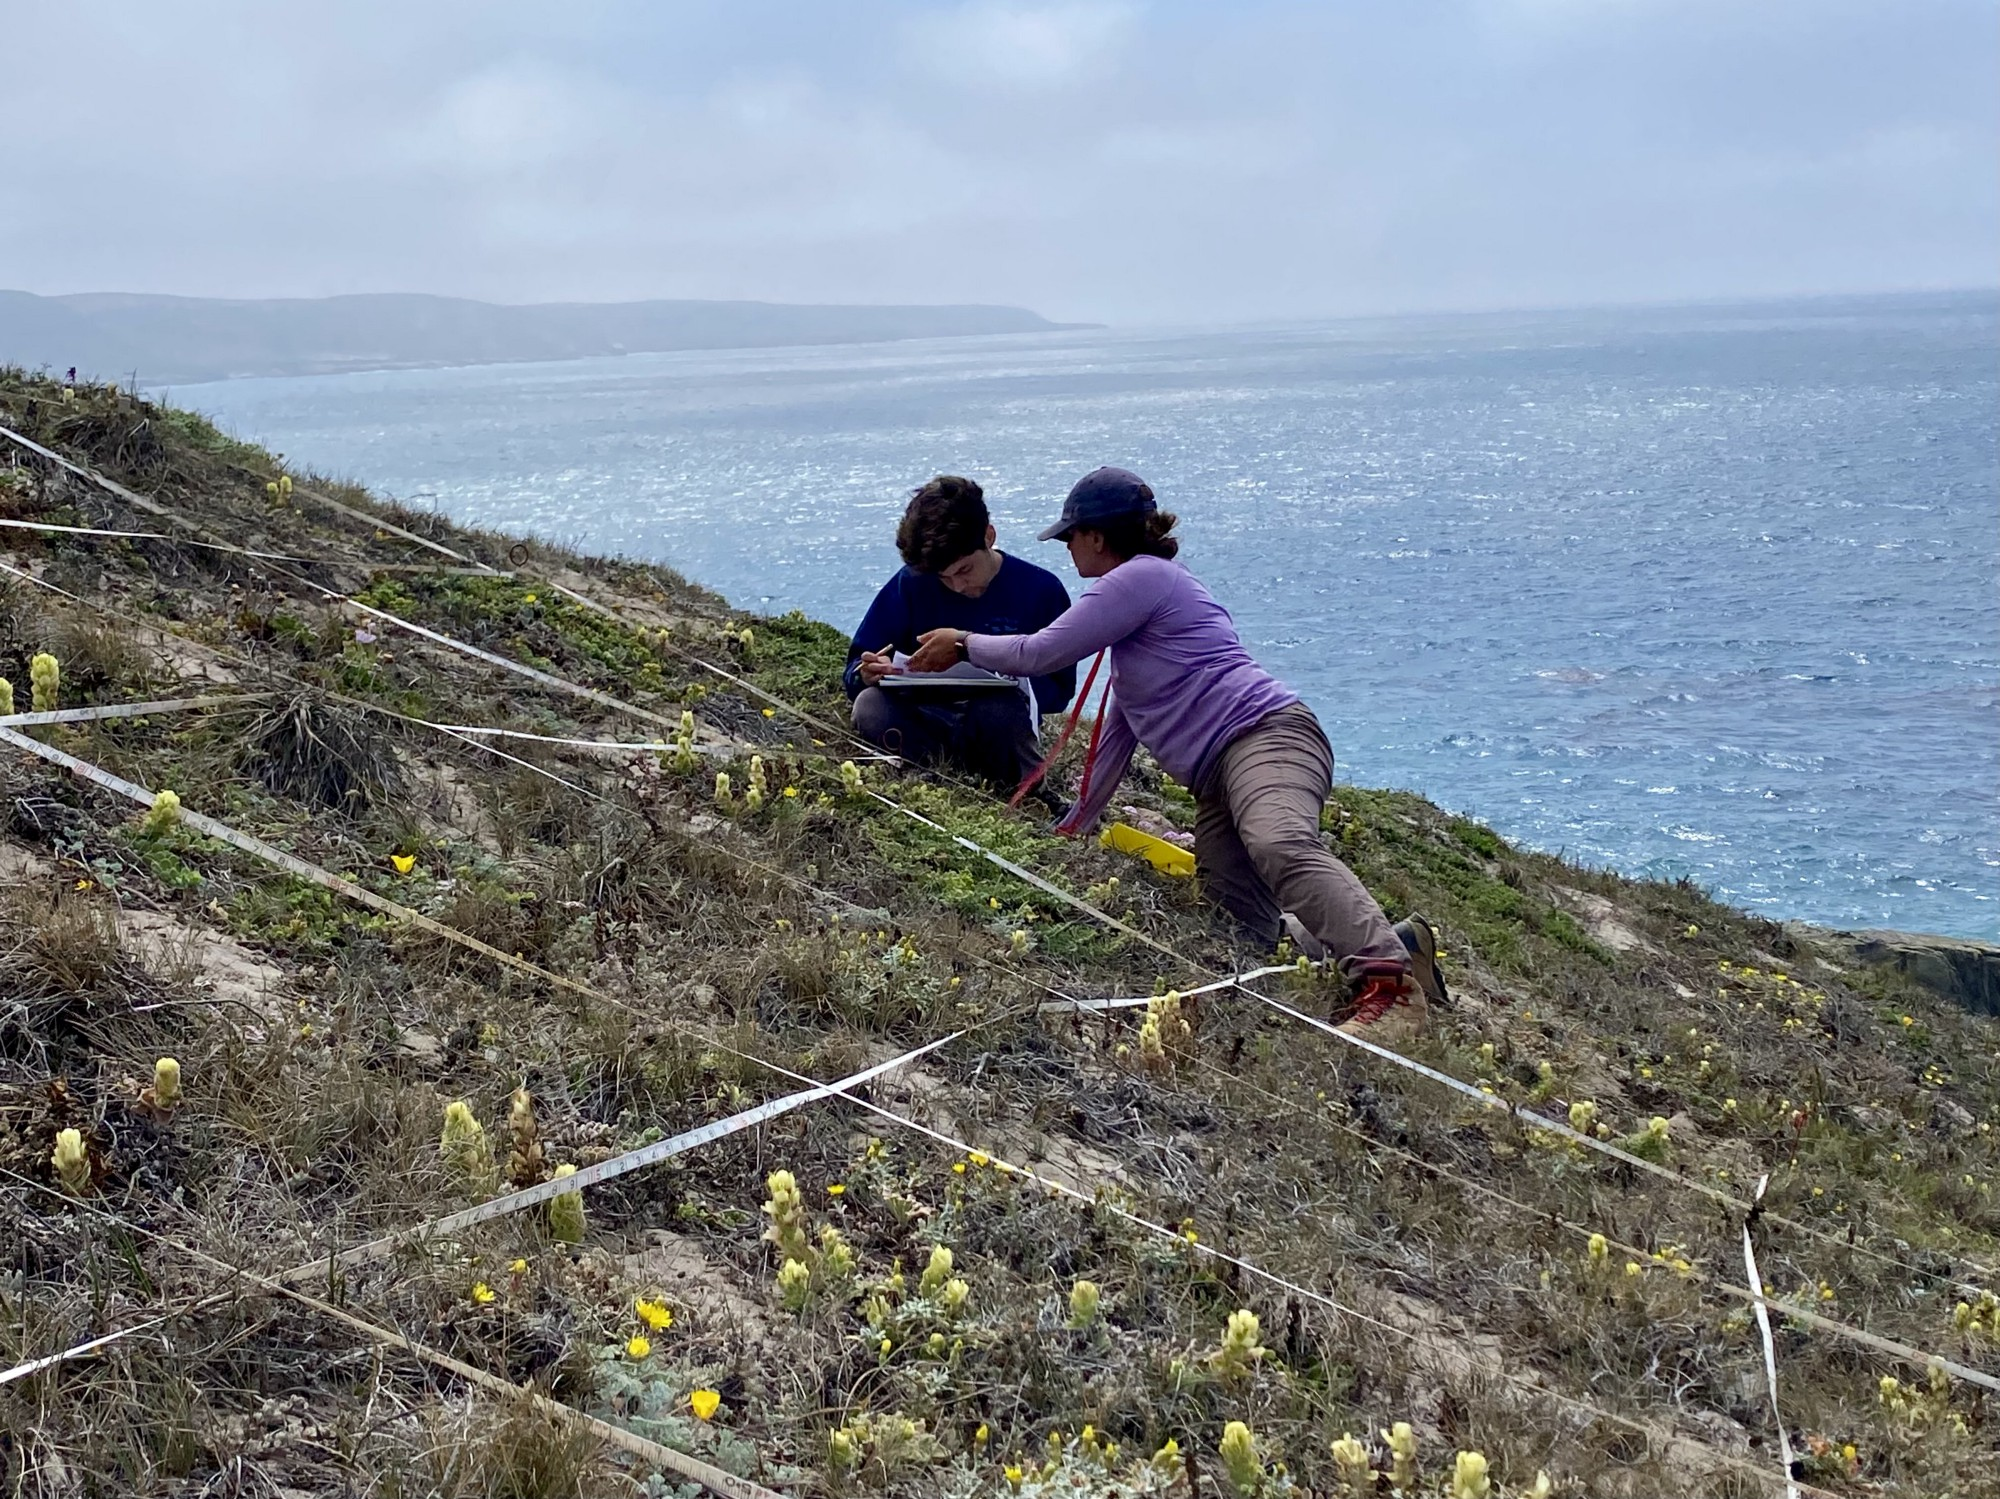 Daniel and another biologist monitor yellow flowers on a cliffside near an ocean